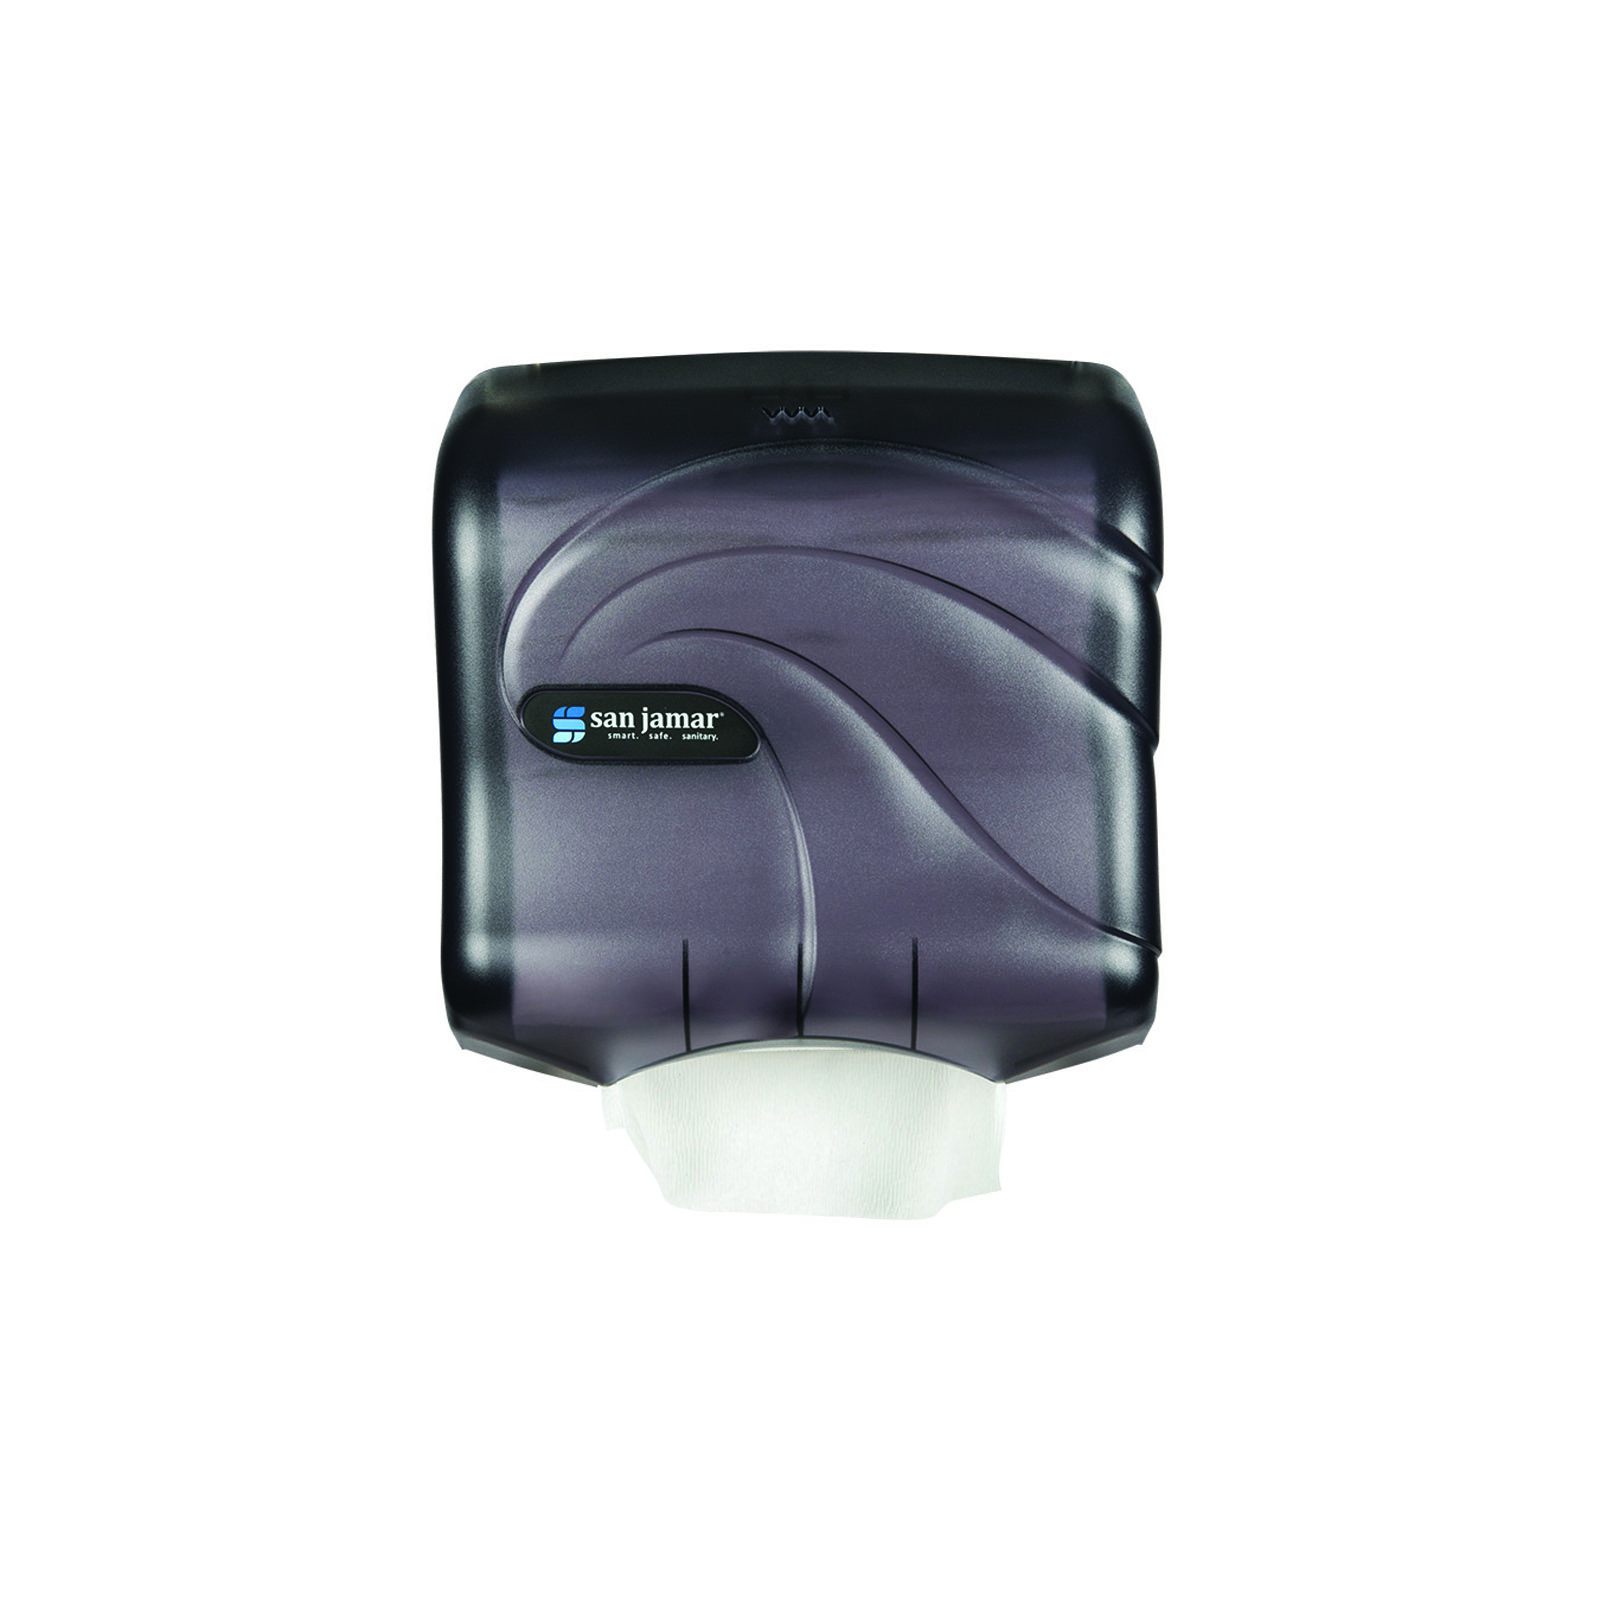 San Jamar T1759TBK paper towel dispenser